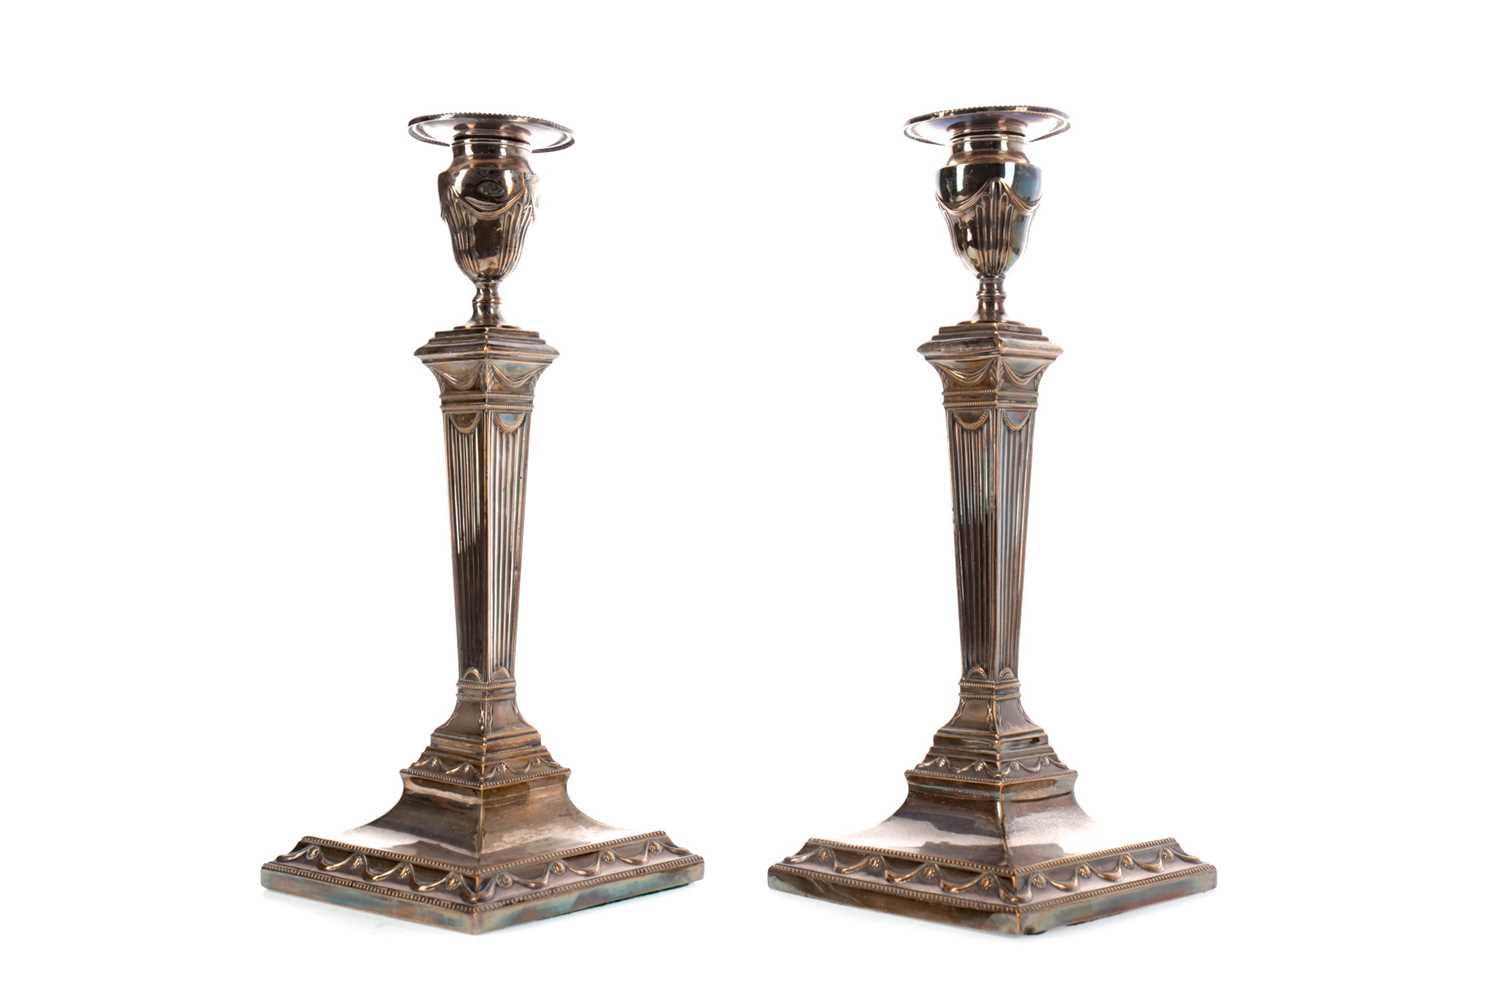 Lot 39 - A PAIR OF MID-19TH CENTURY SHEFFIELD PLATE CANDLESTICKS